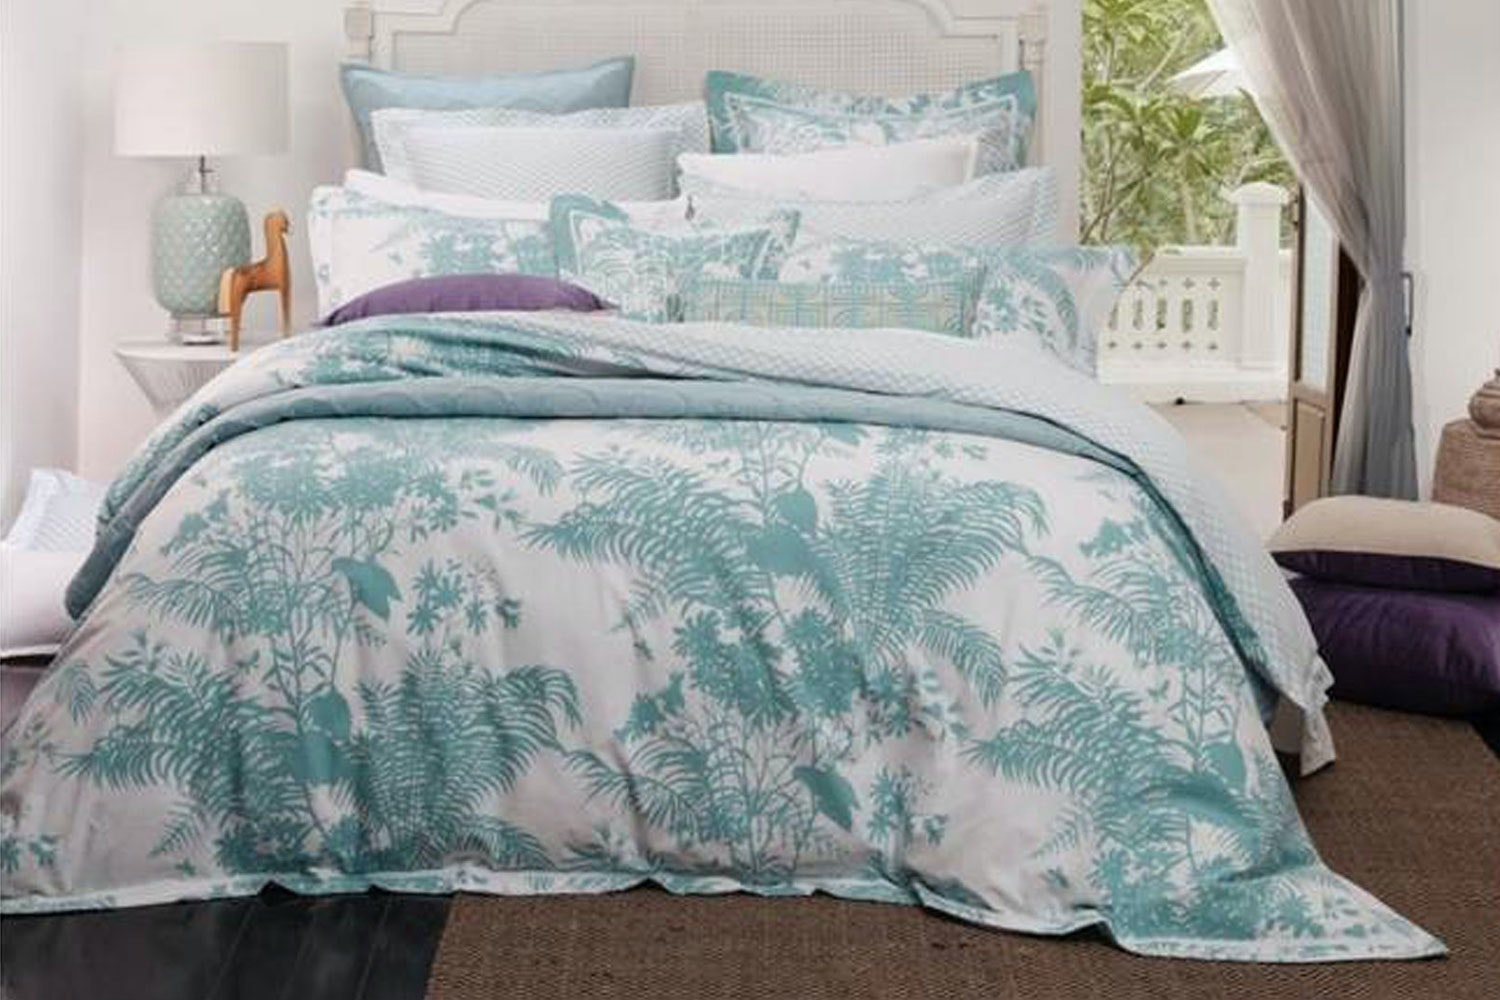 Florence Broadhurst Bed Linen- Shadow Floral Teal